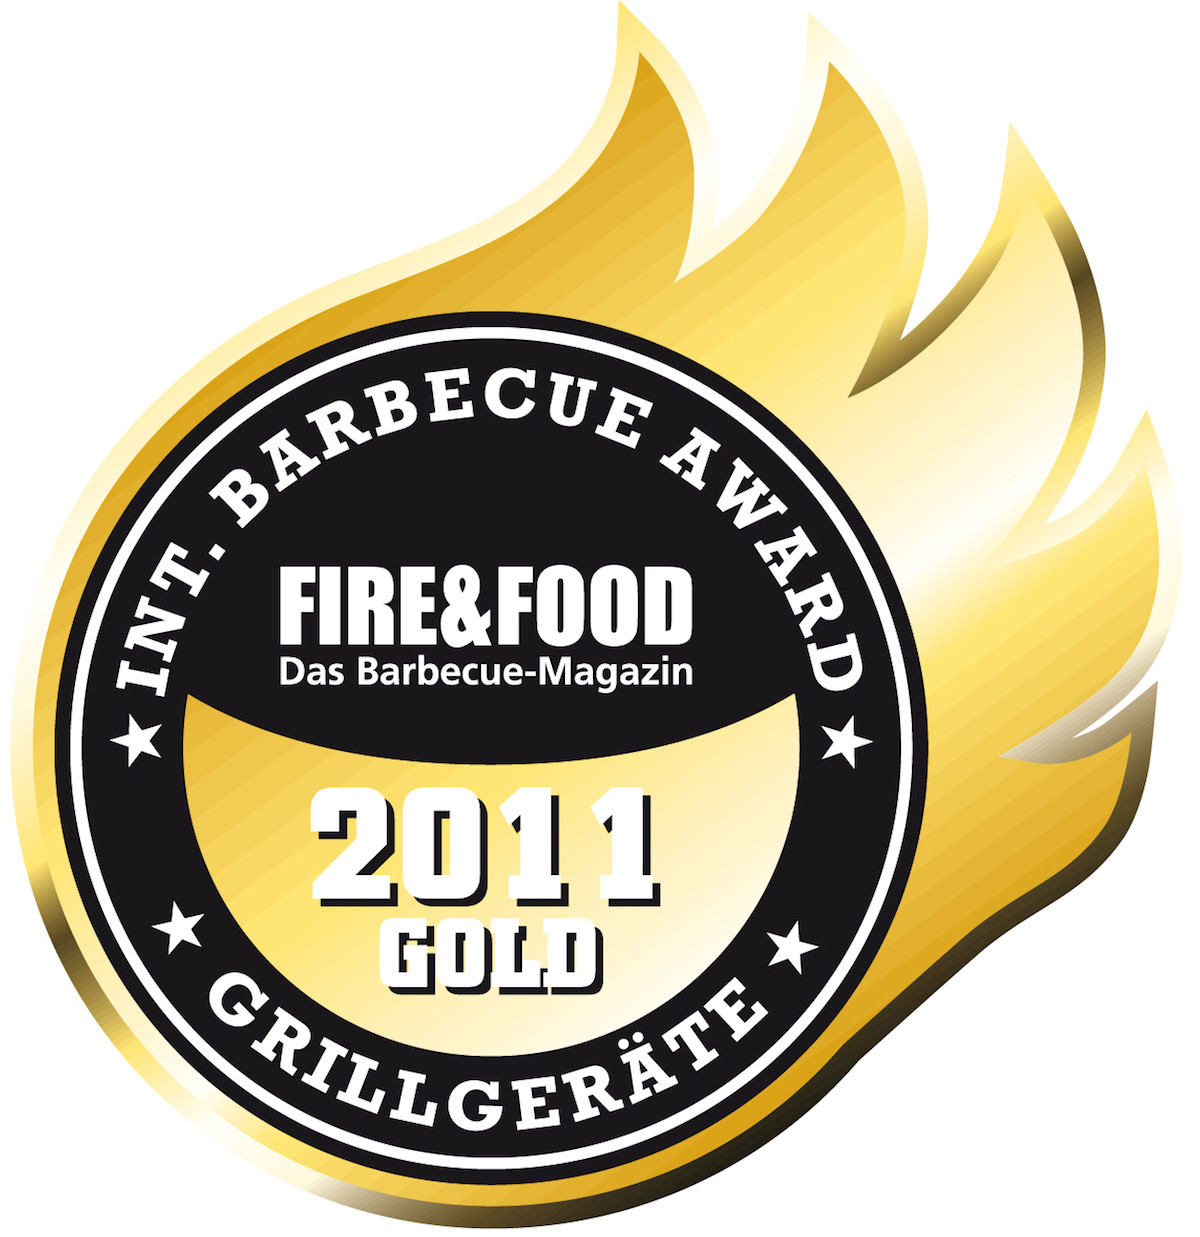 Gewinner des Internationalen Barbecue Awards in Gold